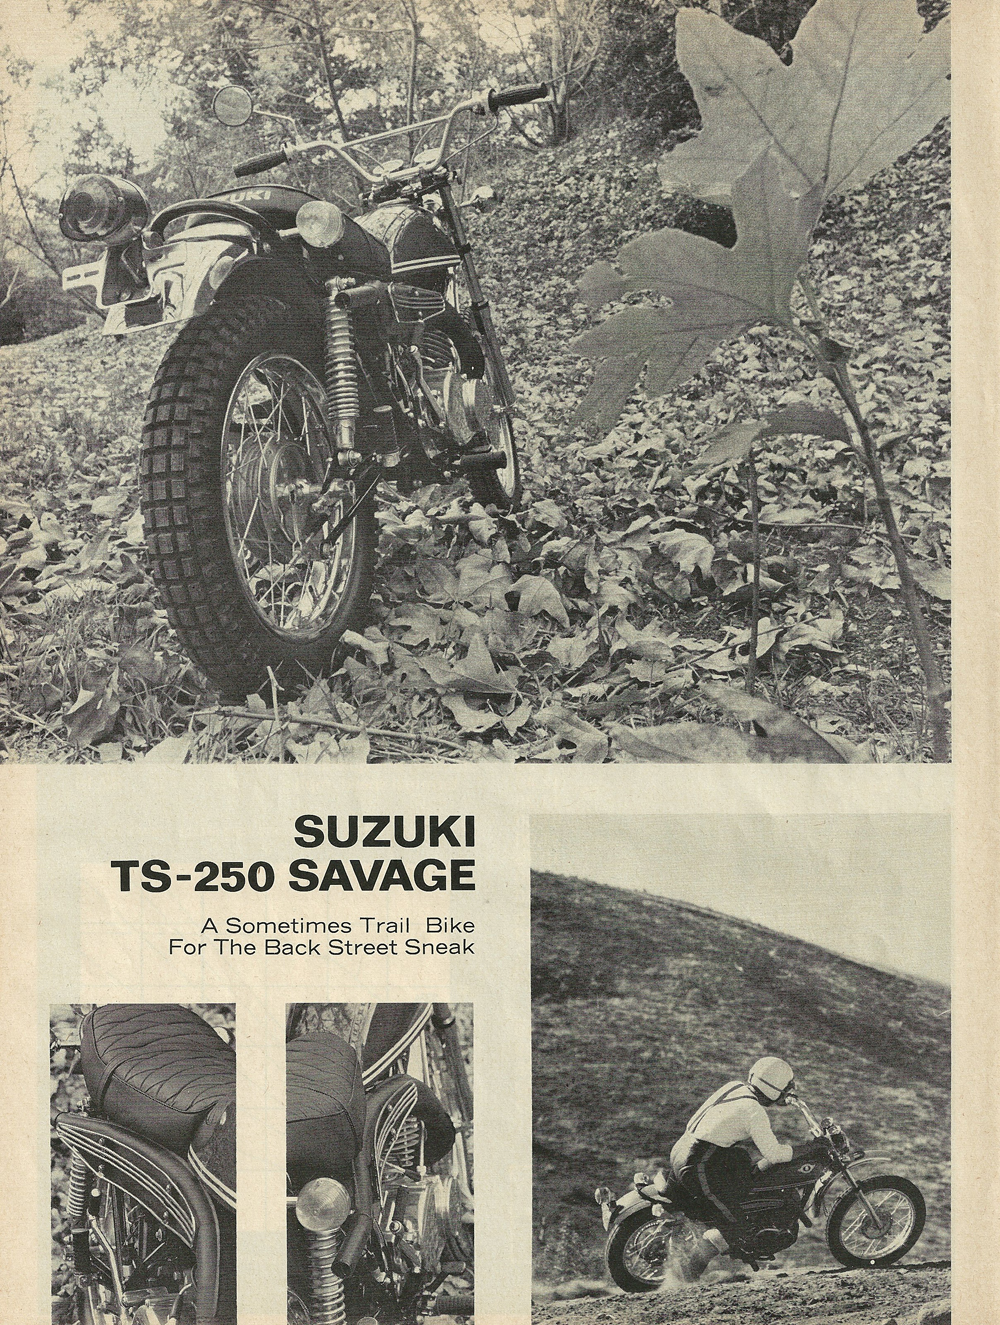 1969 Suzuki TS-250 Savage road test 1.jpg